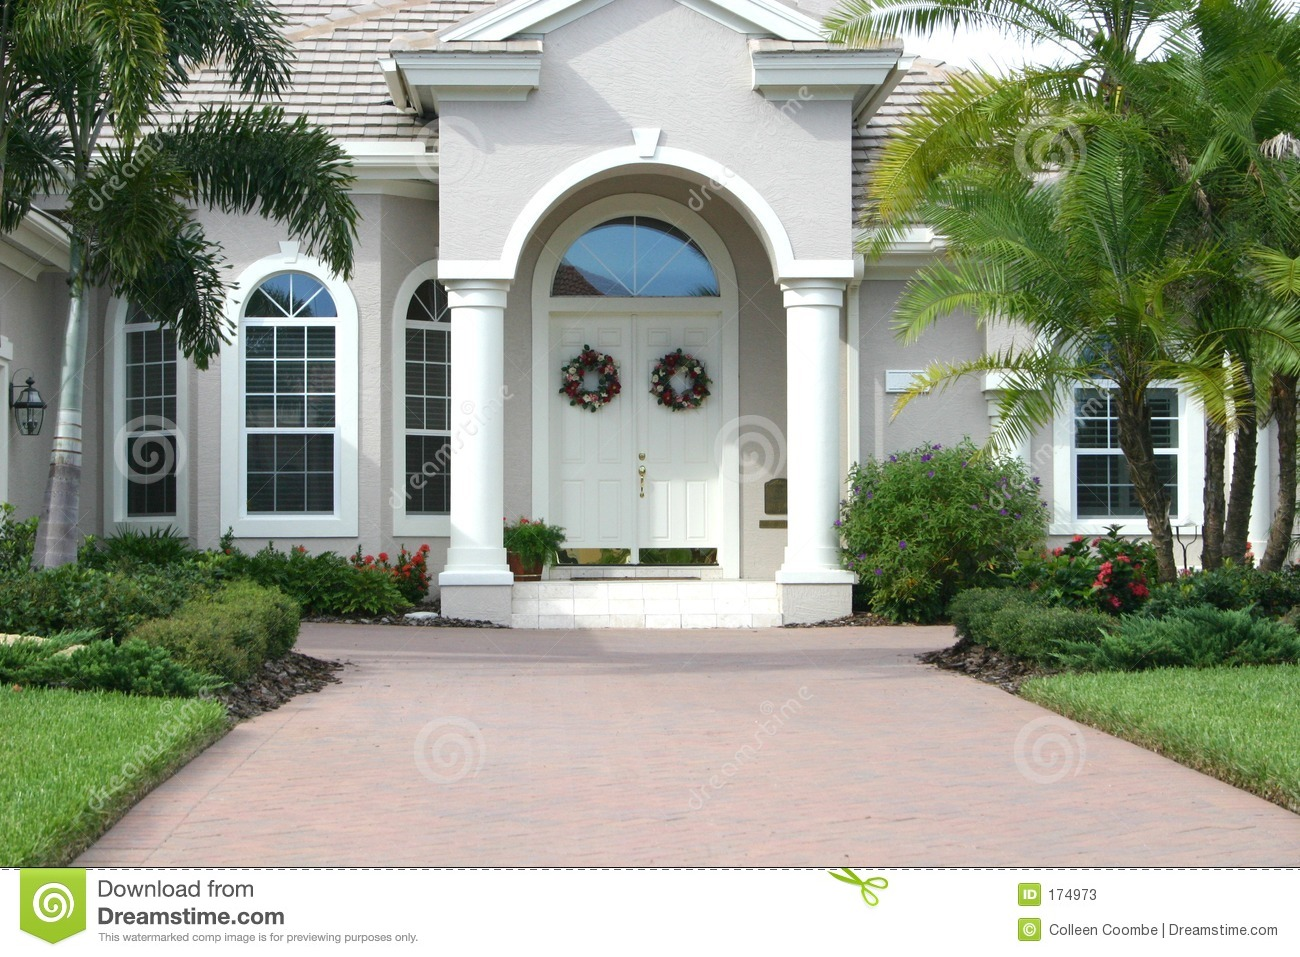 Elegant entrance to beautiful home stock image image of entrance domain 174973 for Beautiful home entrance design